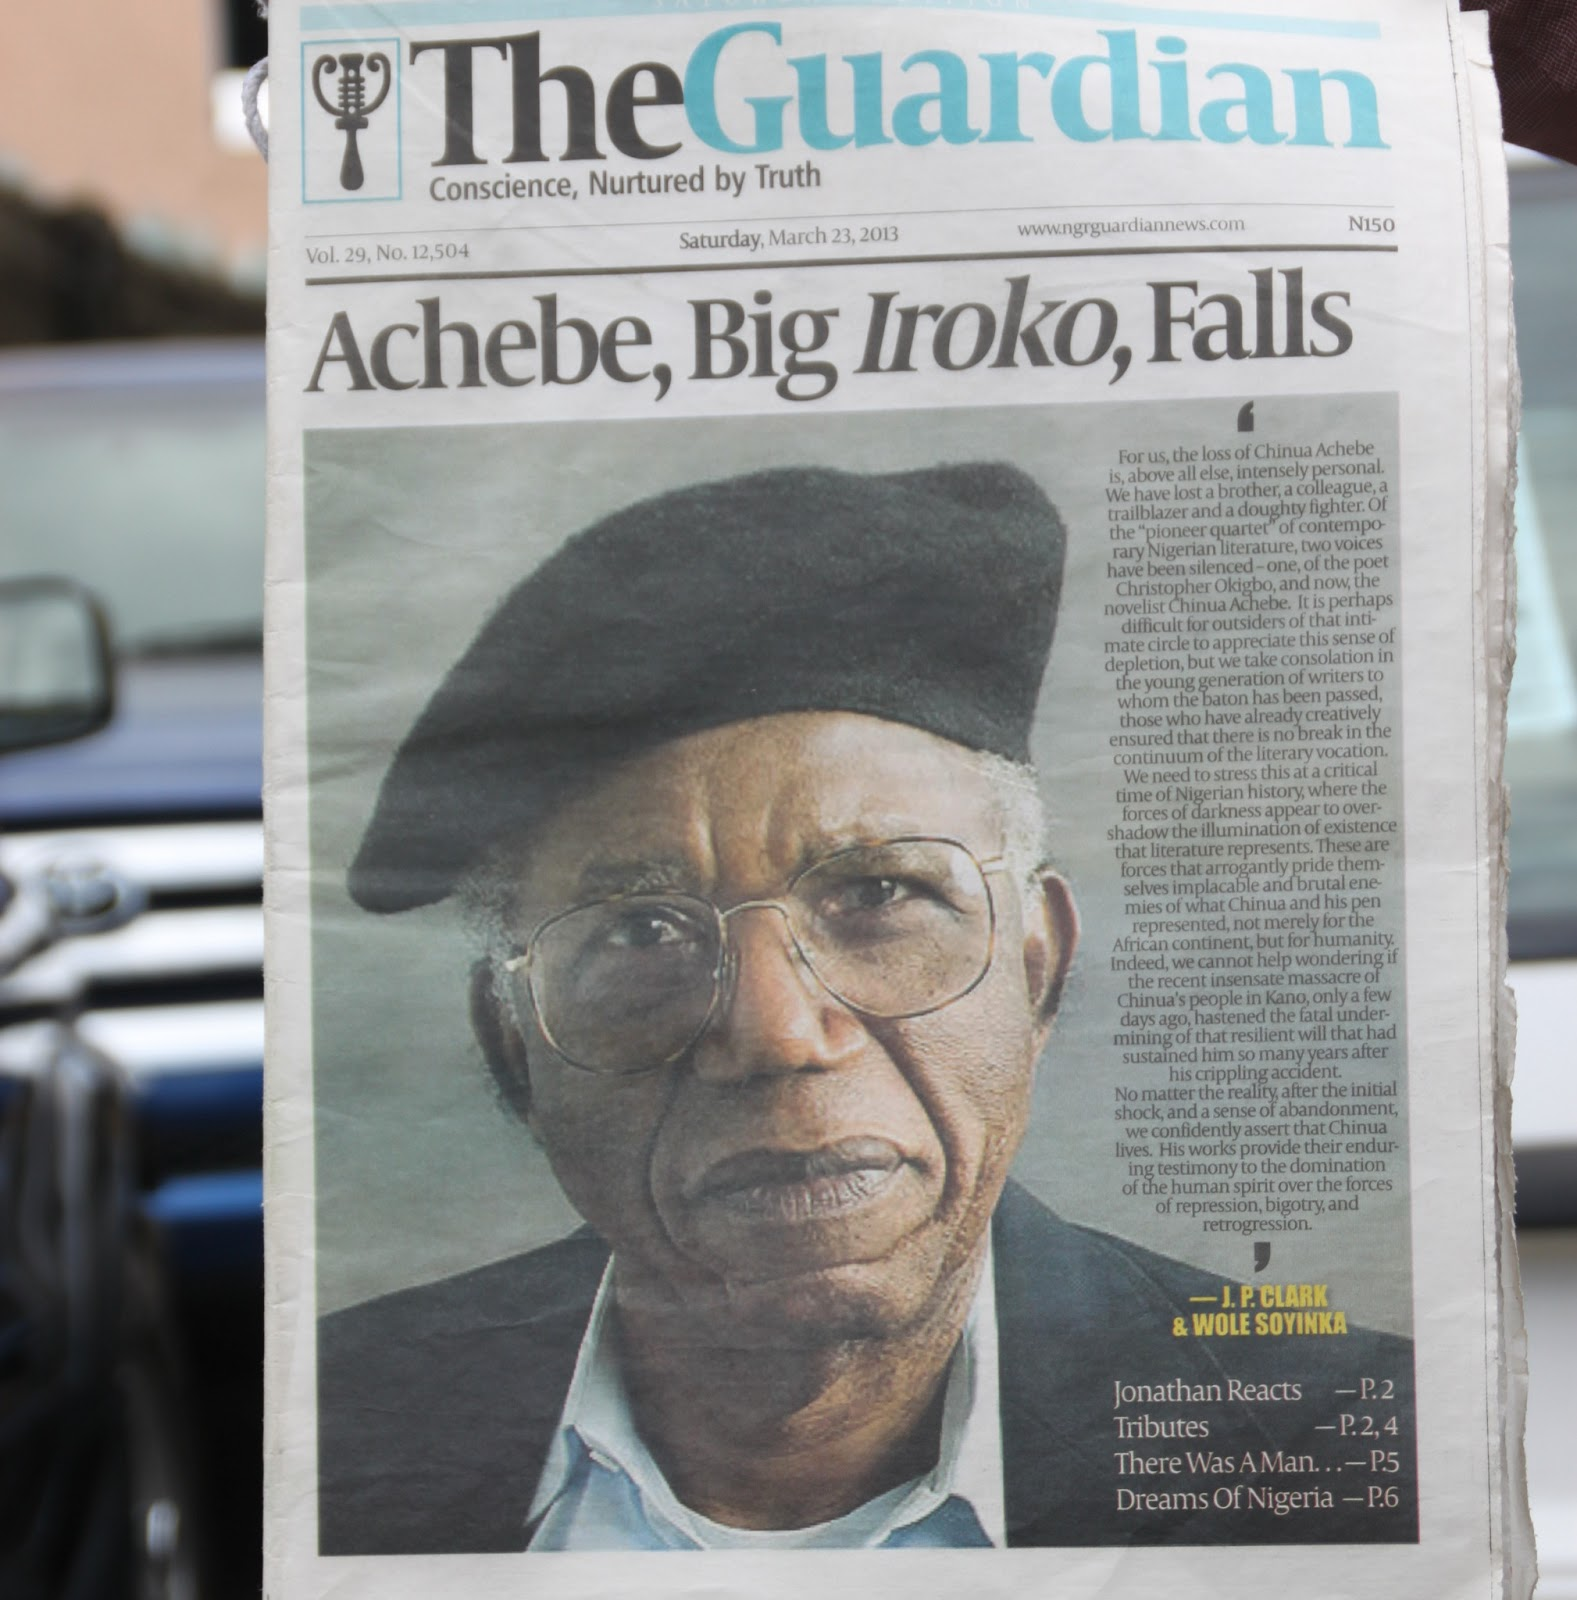 All Things Fall Apart Chinua Achebe: MUST READ!: New York Senate Passes Resolution On Chinua Achebe